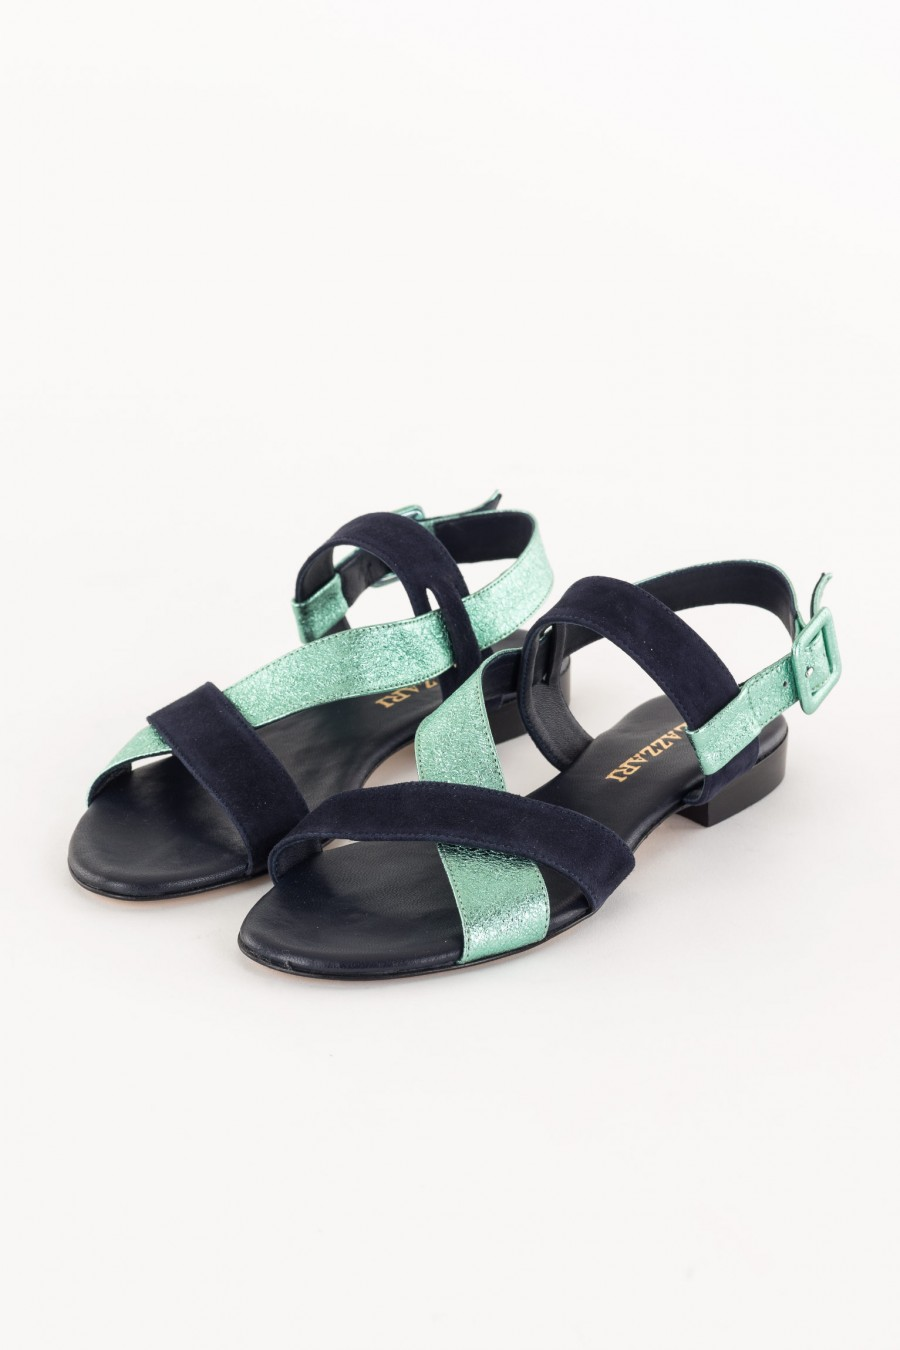 Blue and emerald sandal